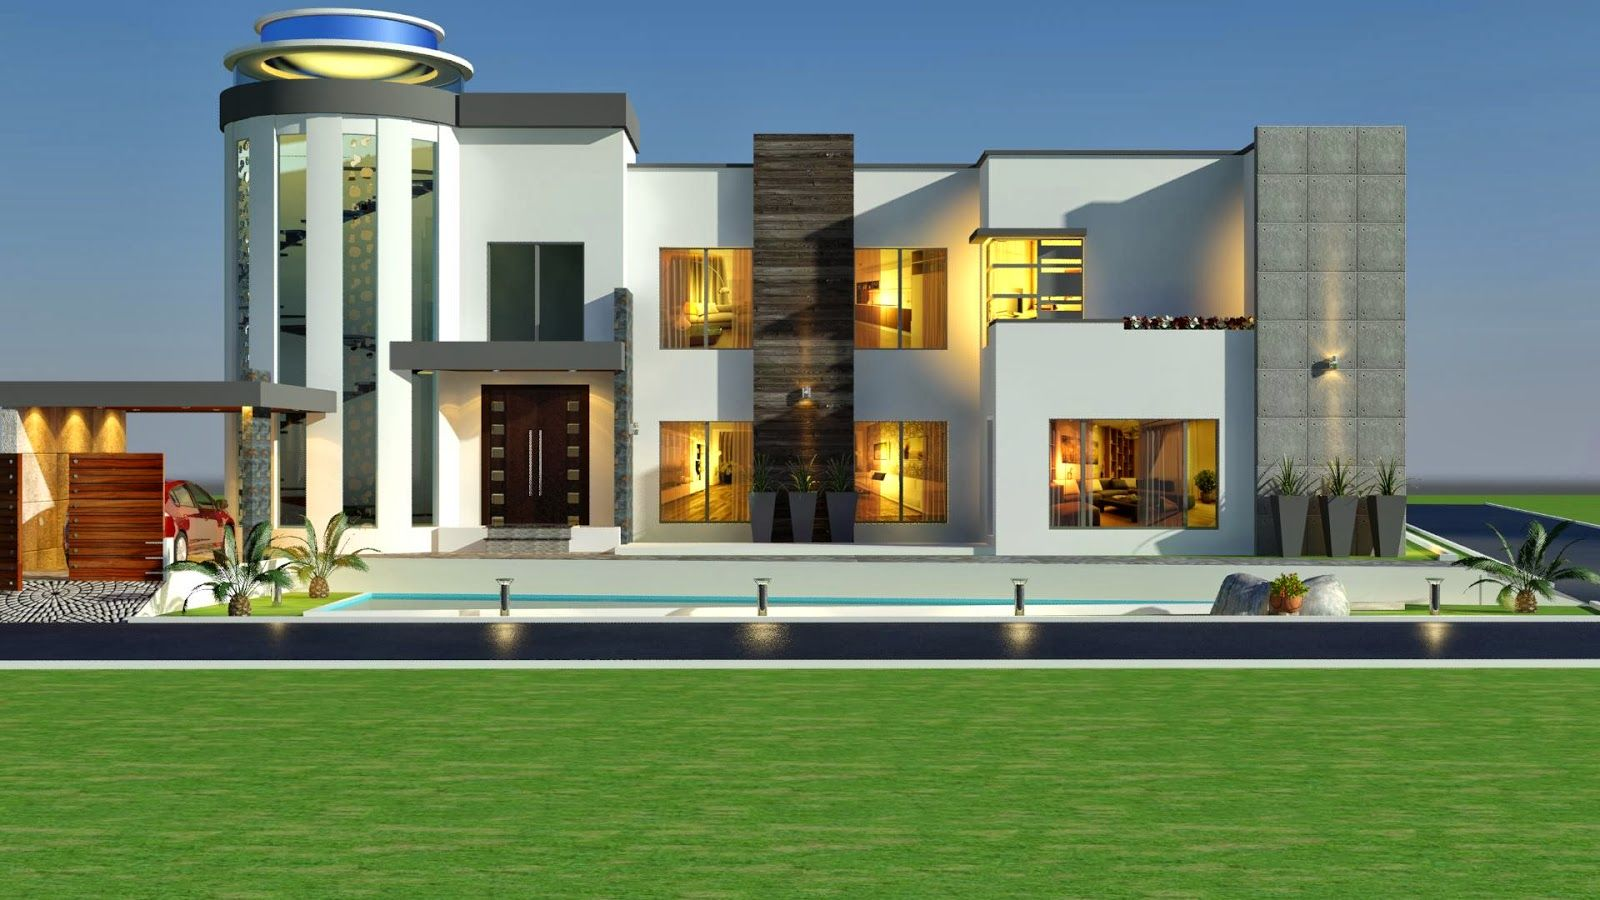 Villa house 2014 3d front elevation kanal modern for Villa architecture design plans